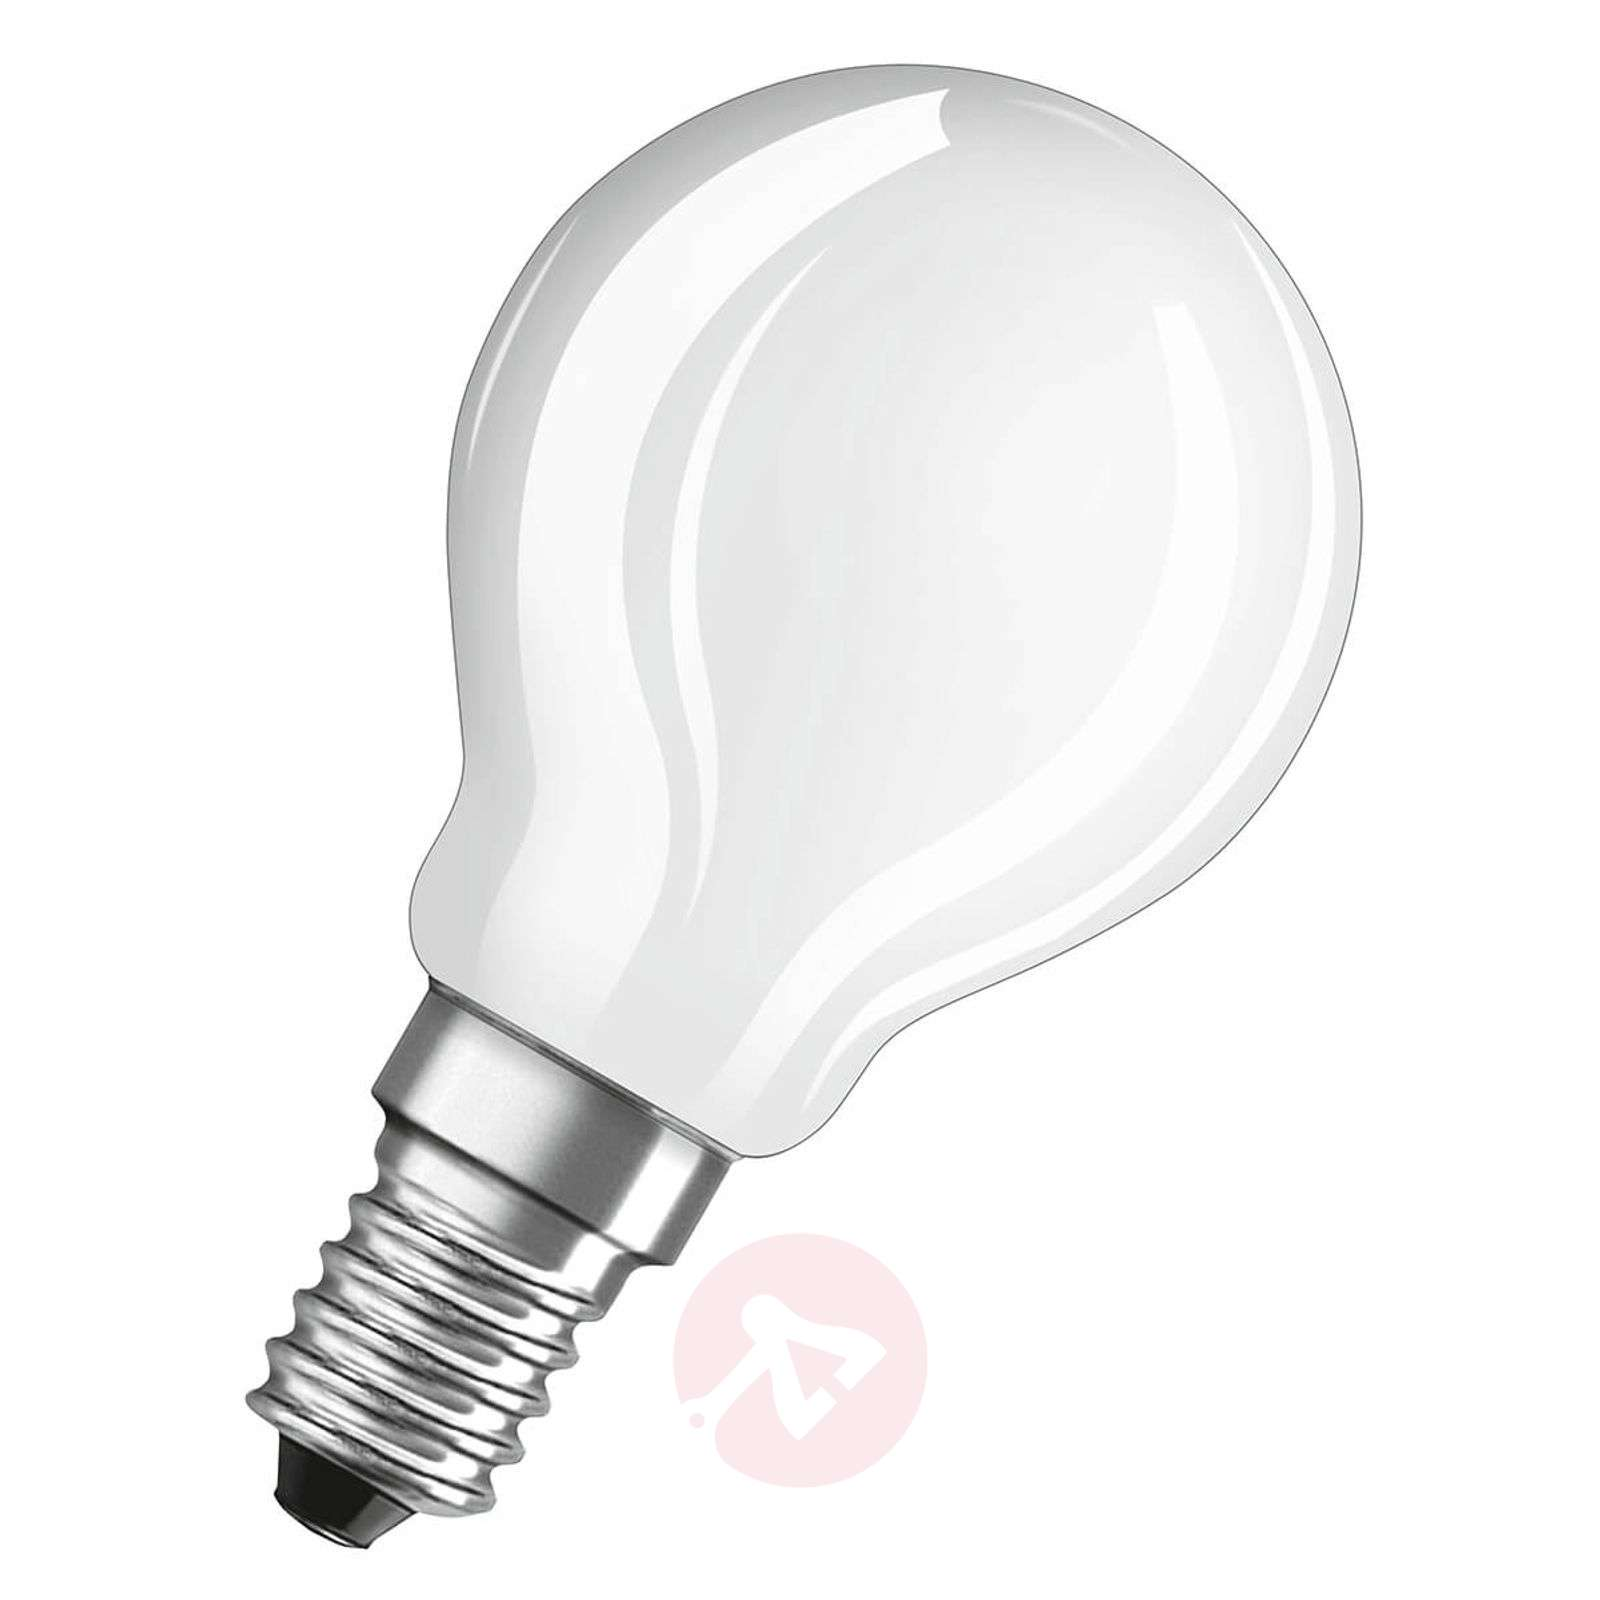 Ampoule LED E14 4 W, blanc chaud, 470 lm, kit de 3-7262102-01